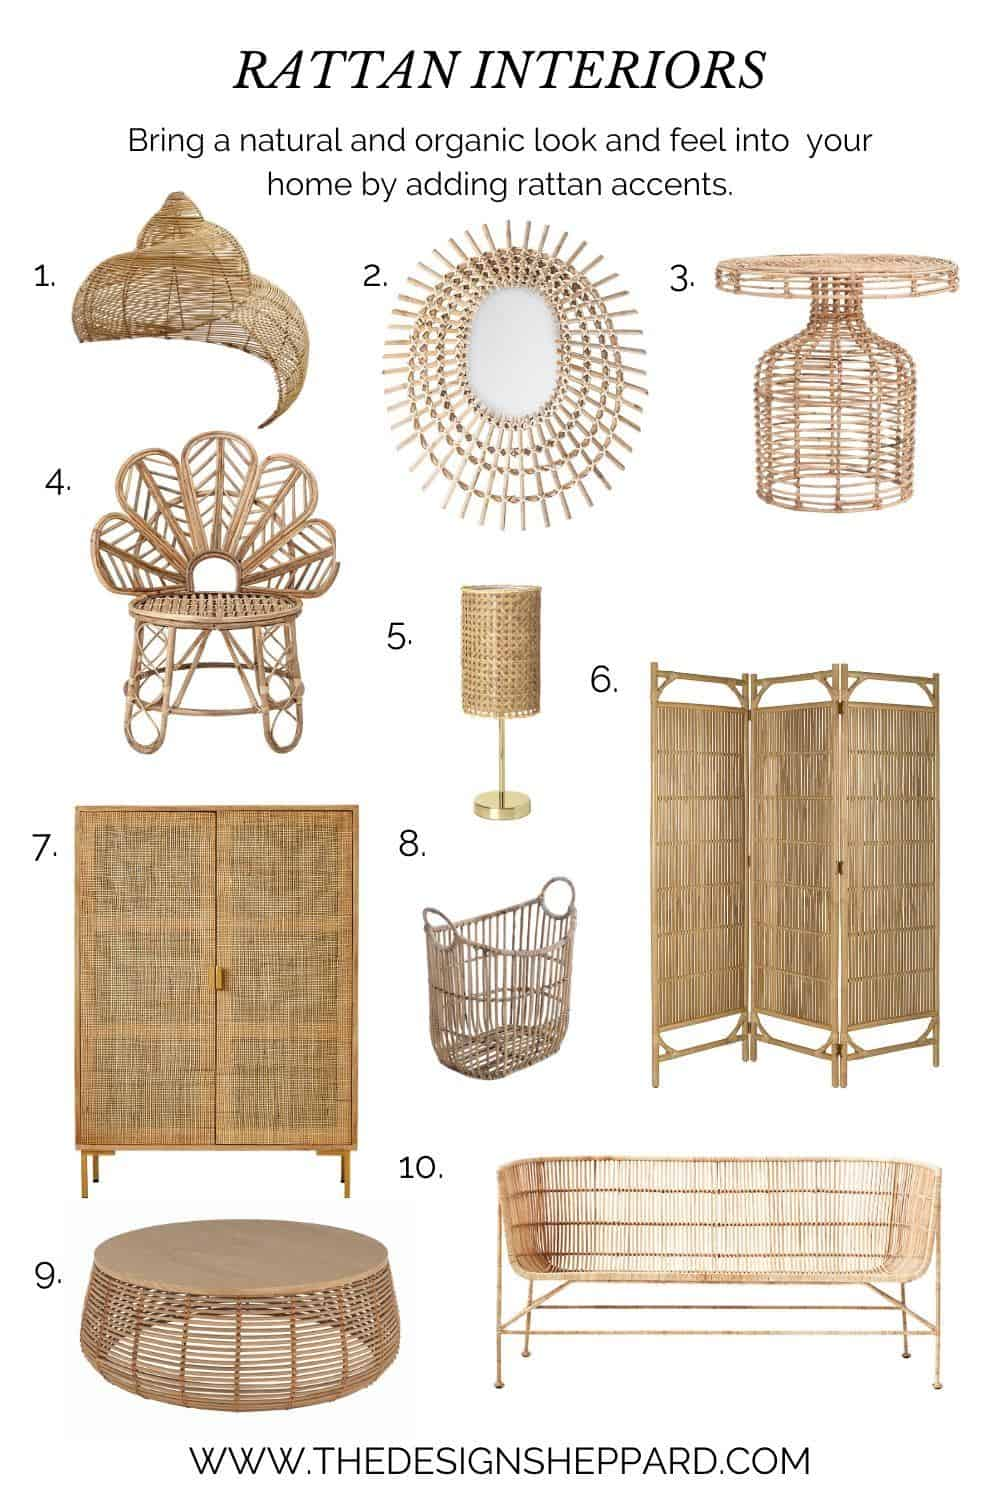 10 great products for Rattan interiors